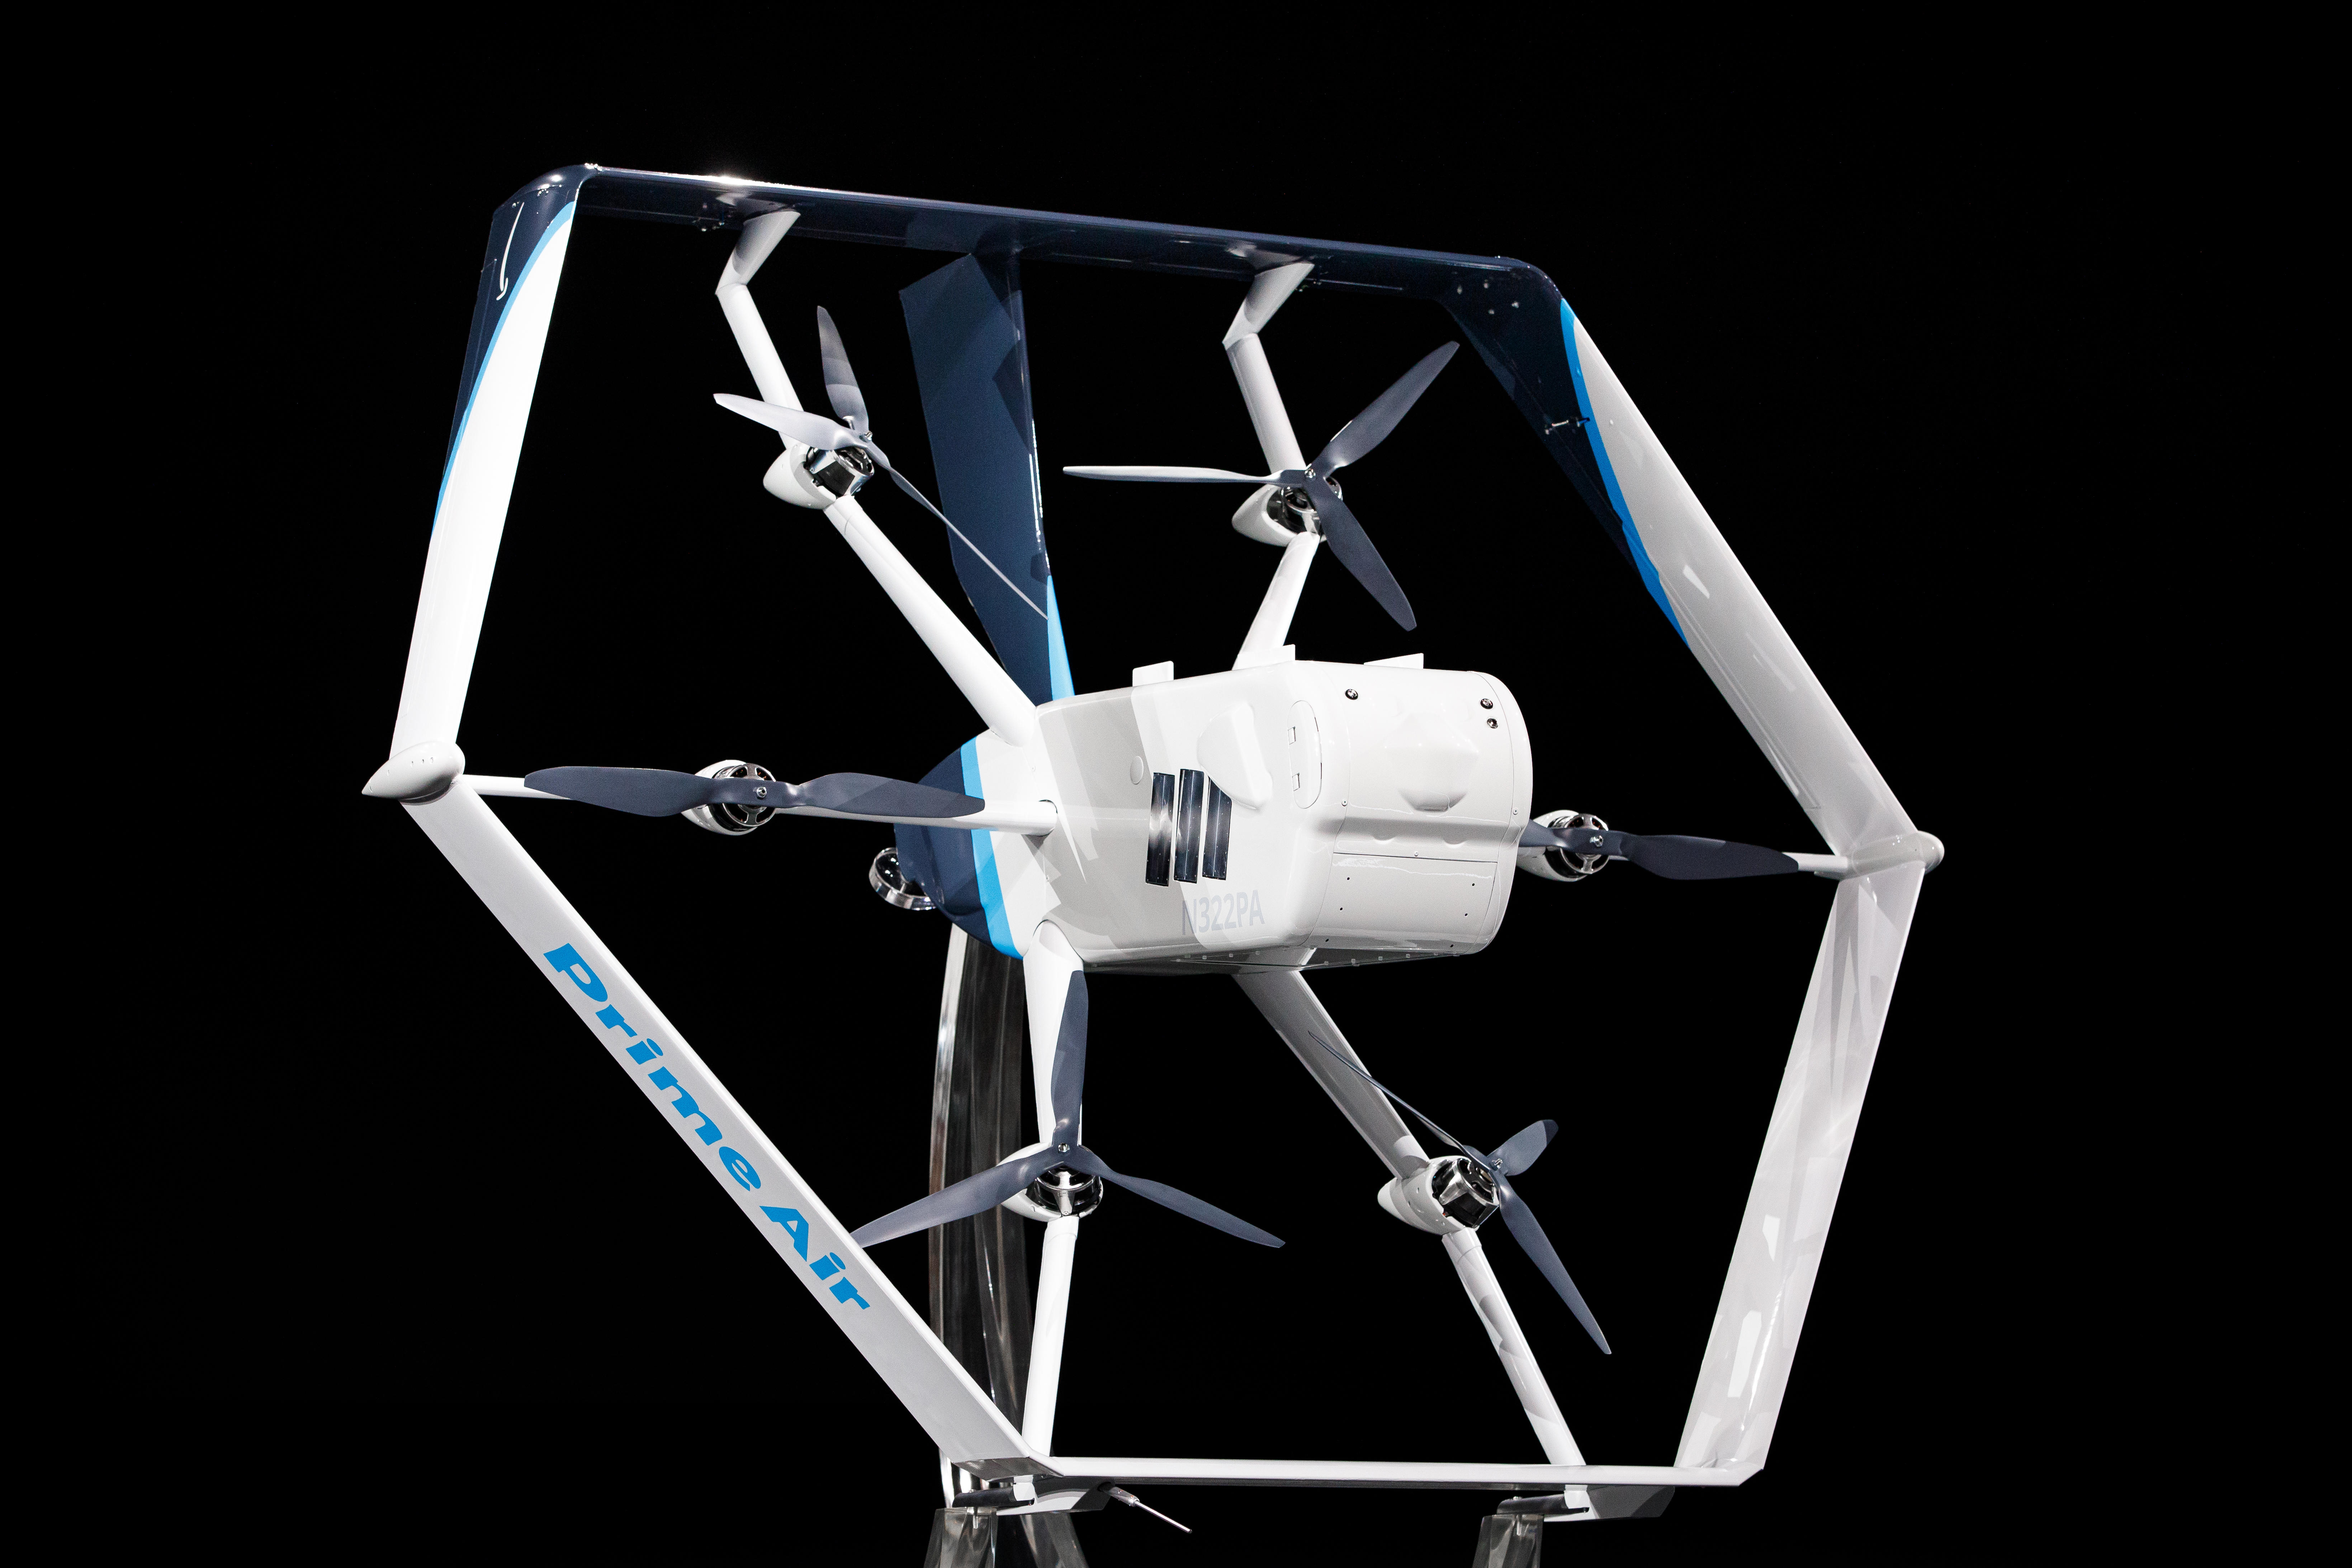 Amazon Prime Air Drone revealed at 2019 re:MARS conference